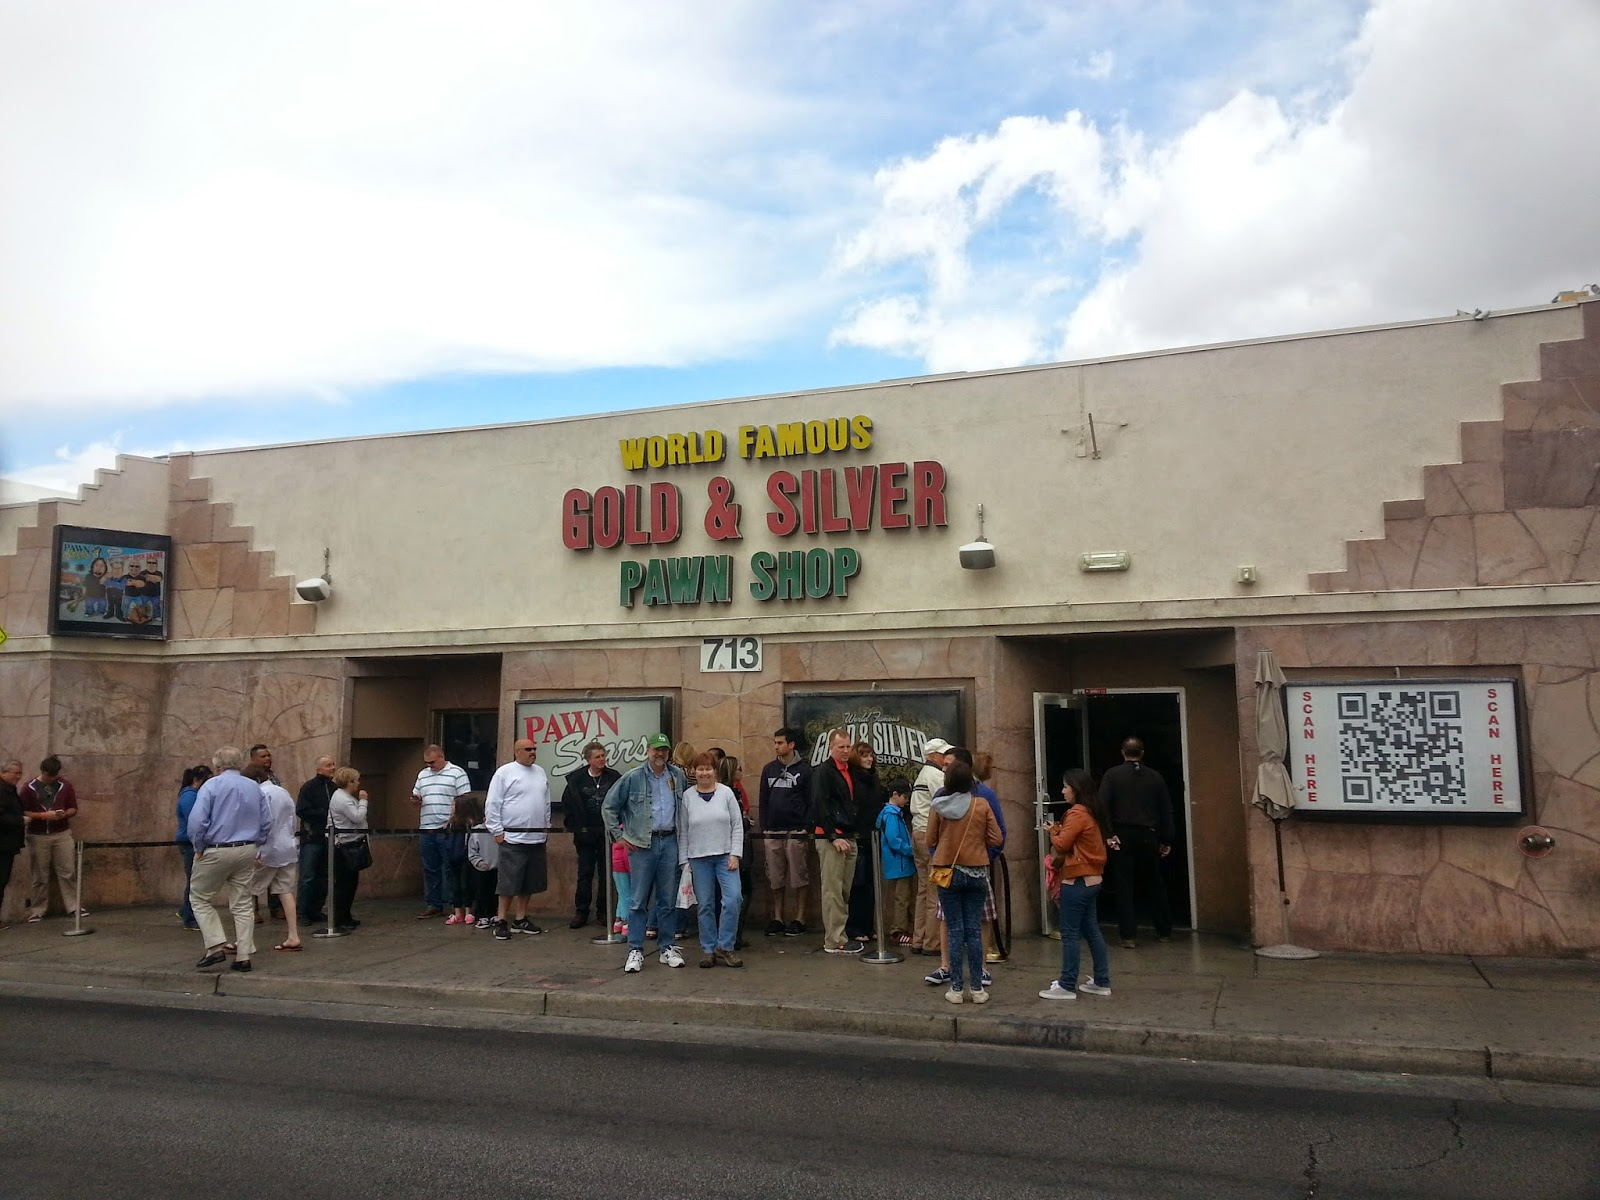 Pawn stars location in Vegas